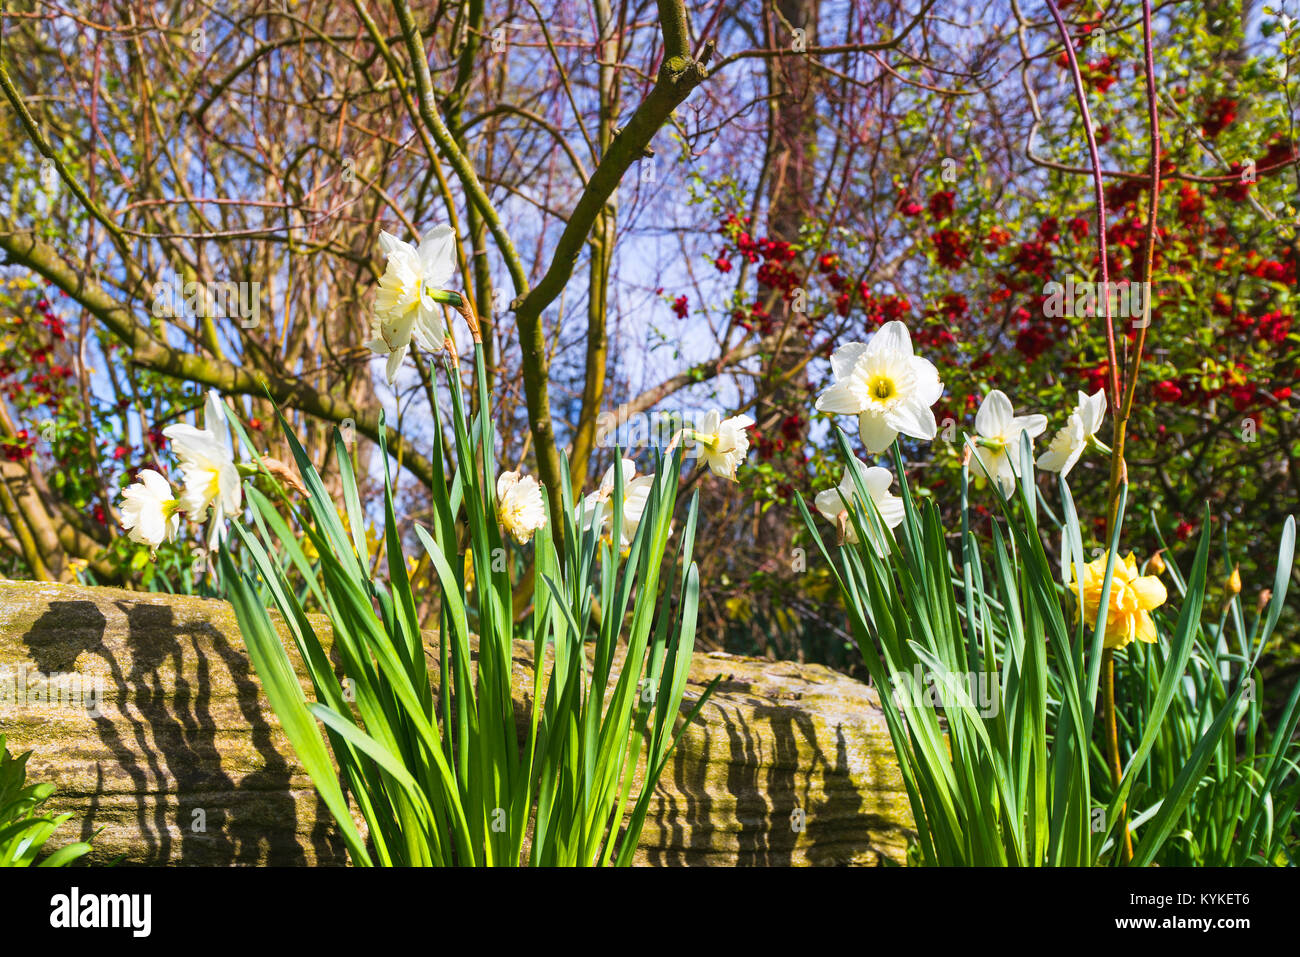 White daffodil flowers in a garden in the spring with sunlight and blooming bushes - Stock Image